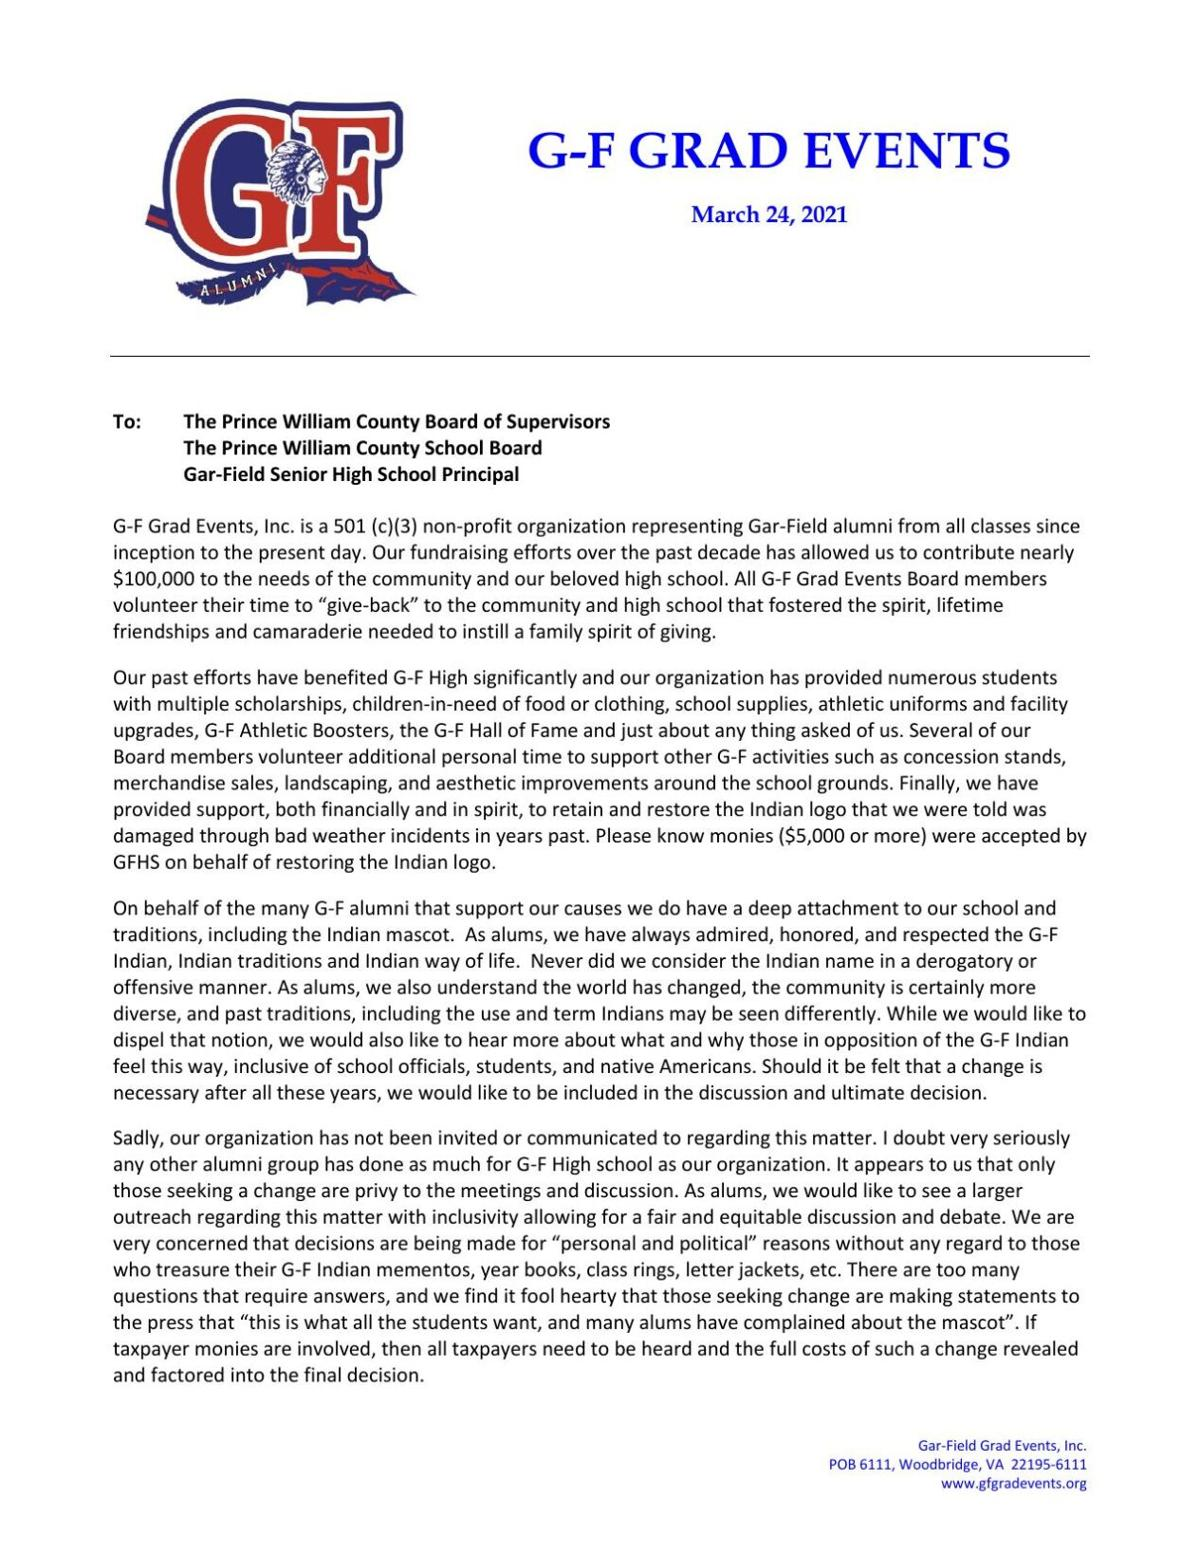 Read the letter from Gar-Field Grad Events